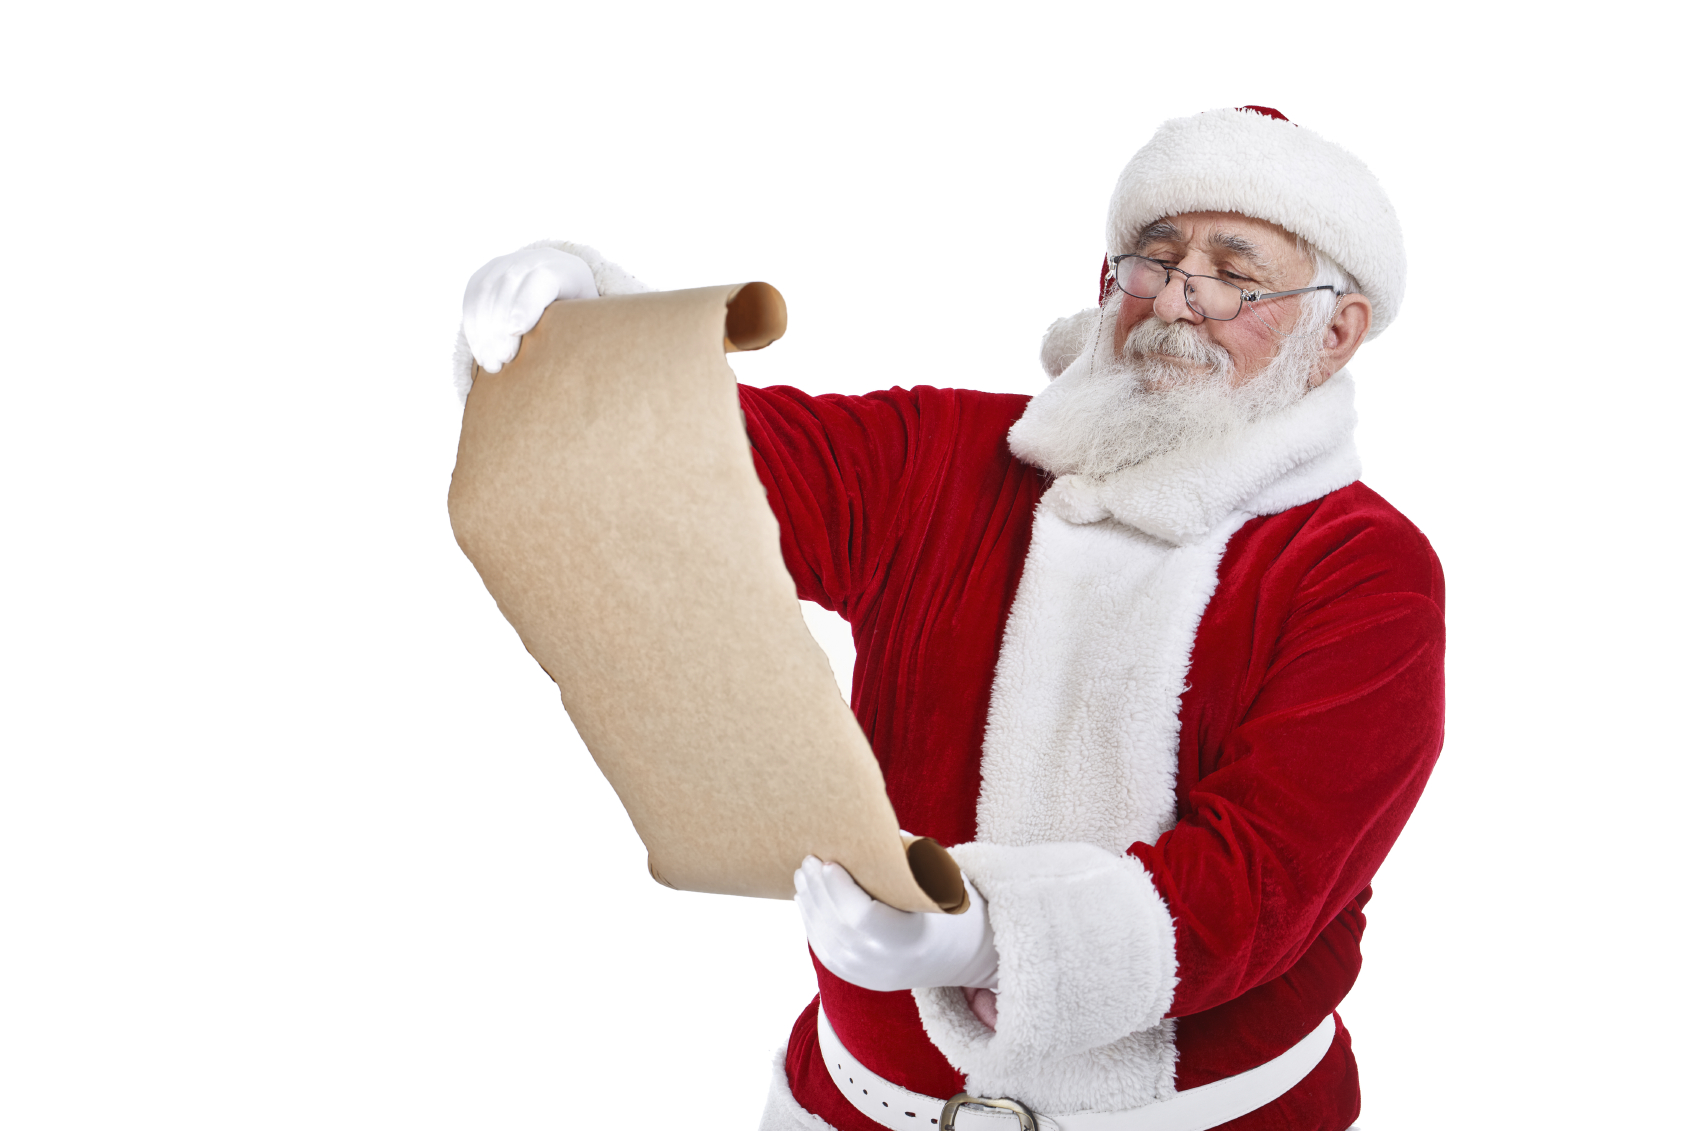 SantaClaus - Our Latest Referral Program Drawing Winners...